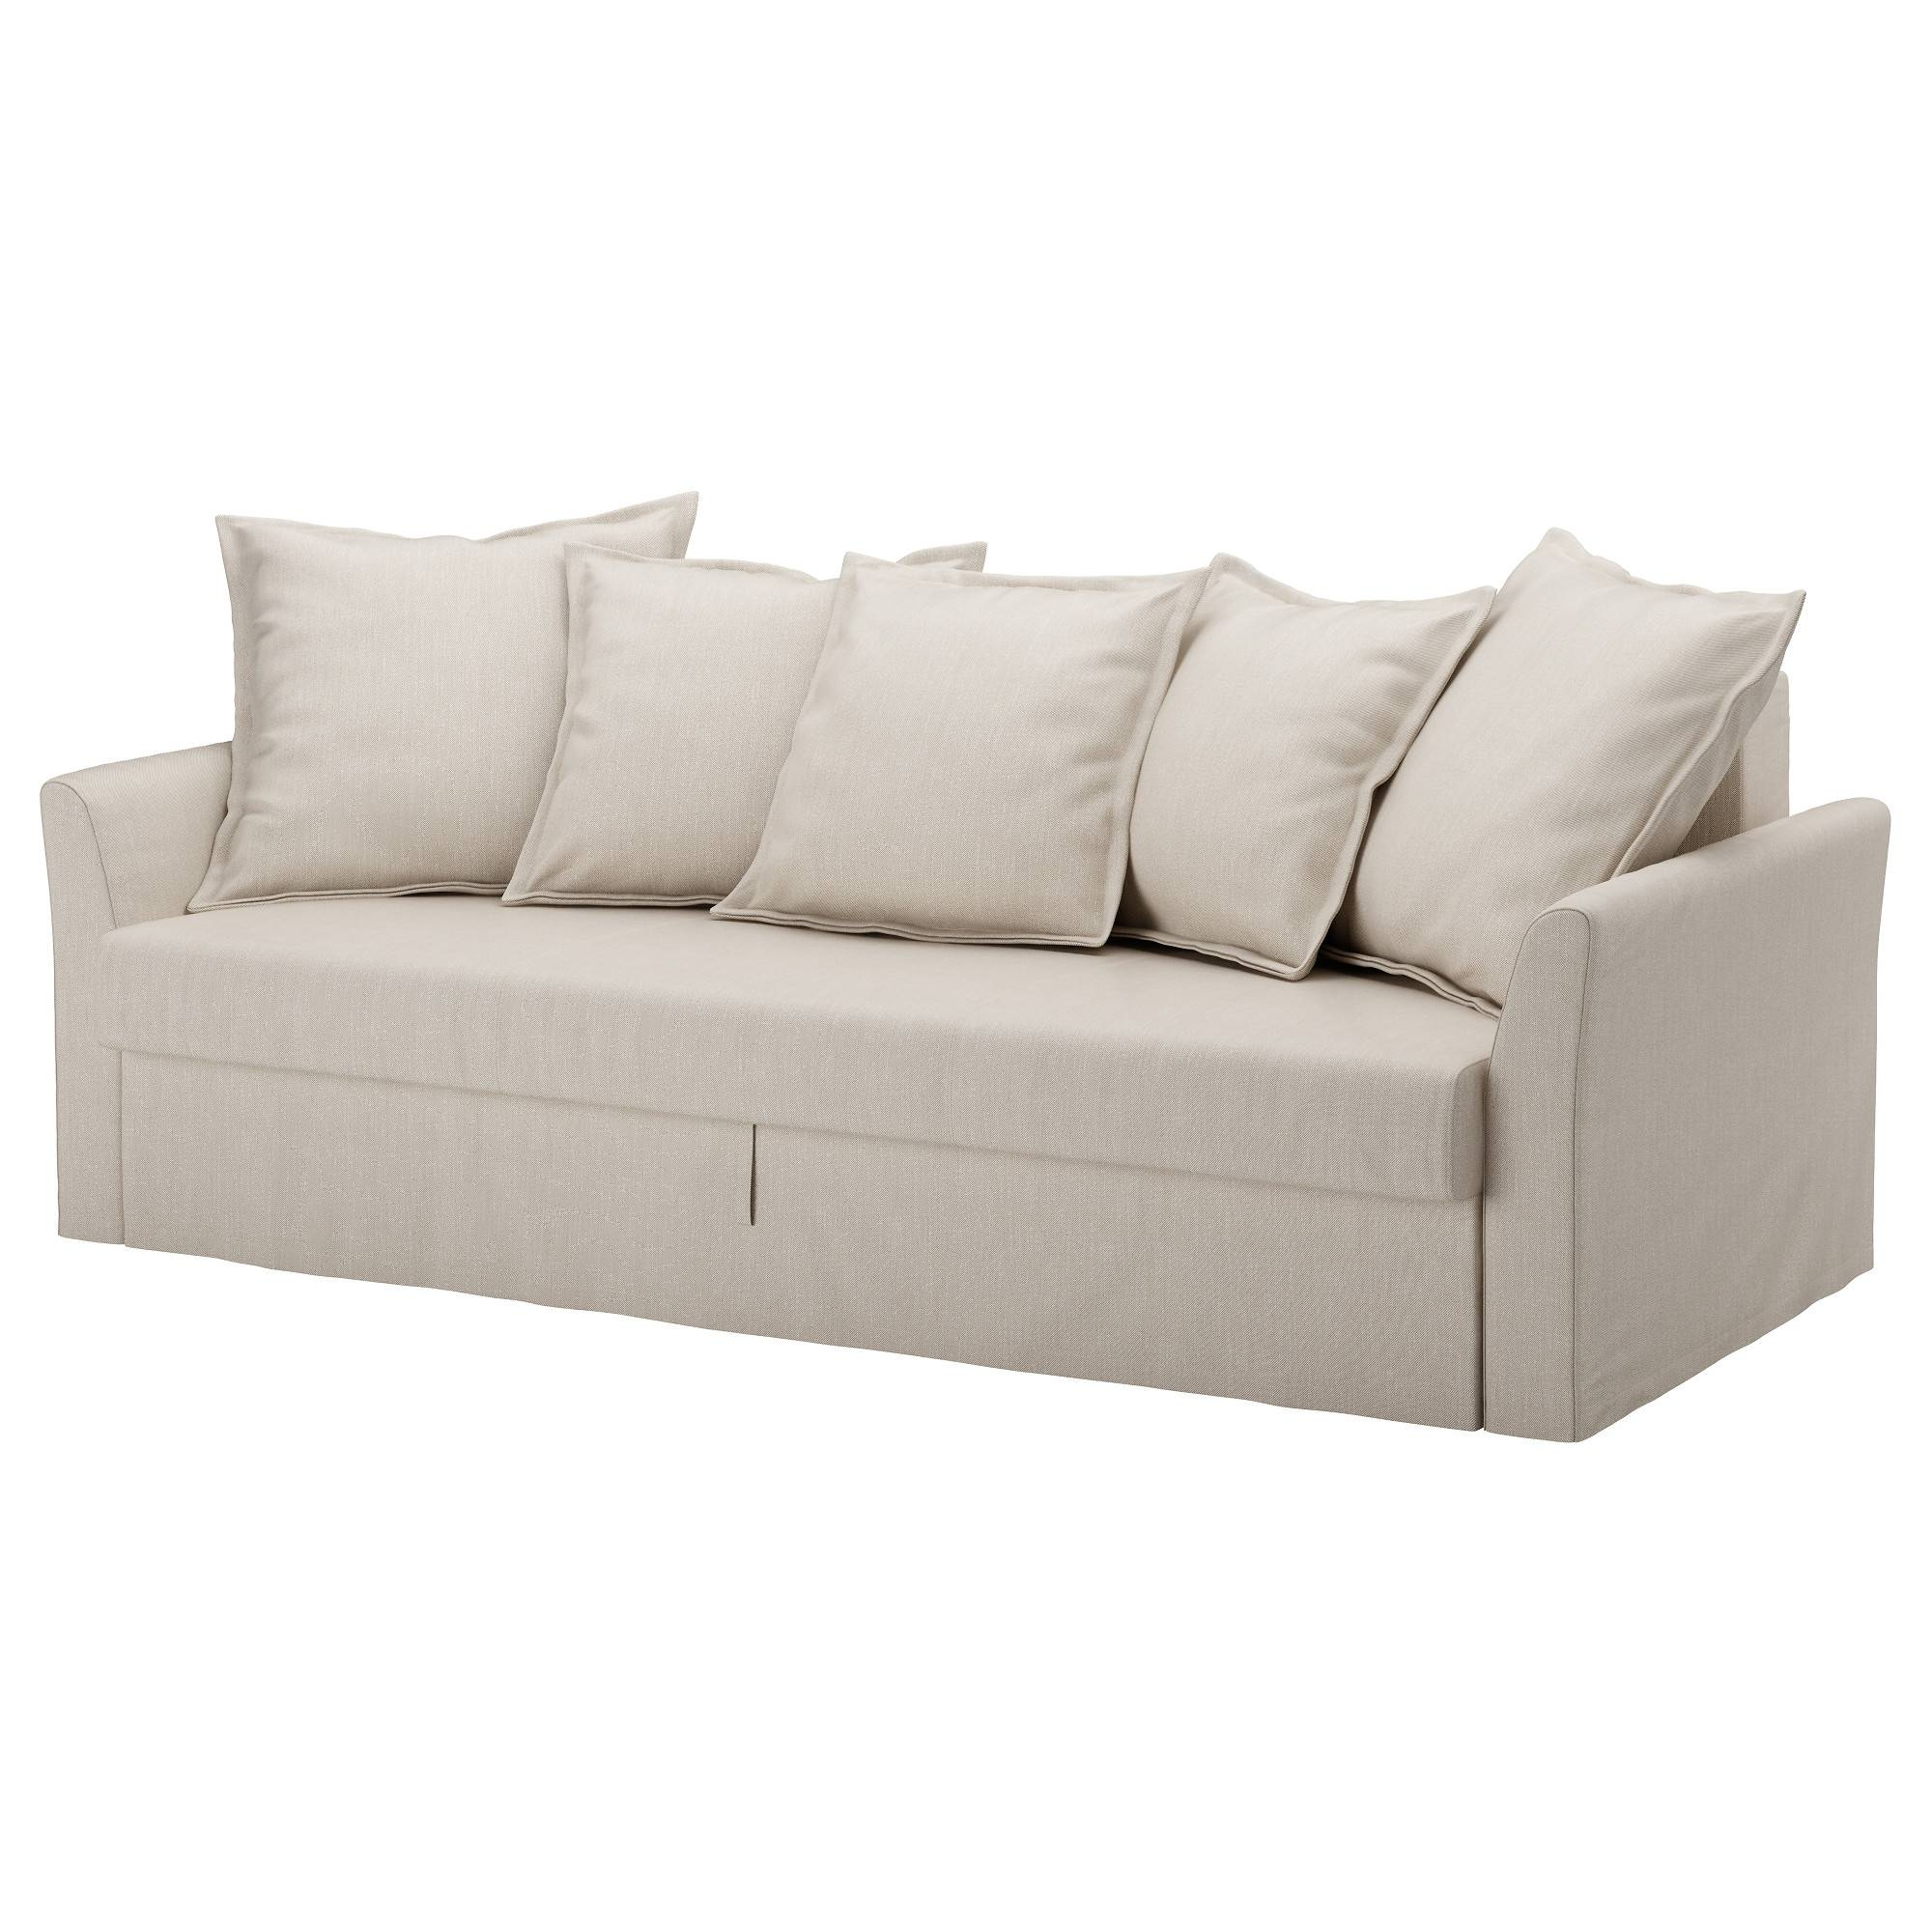 Sofa Beds & Futons – Ikea Intended For Cushion Sofa Beds (View 23 of 30)